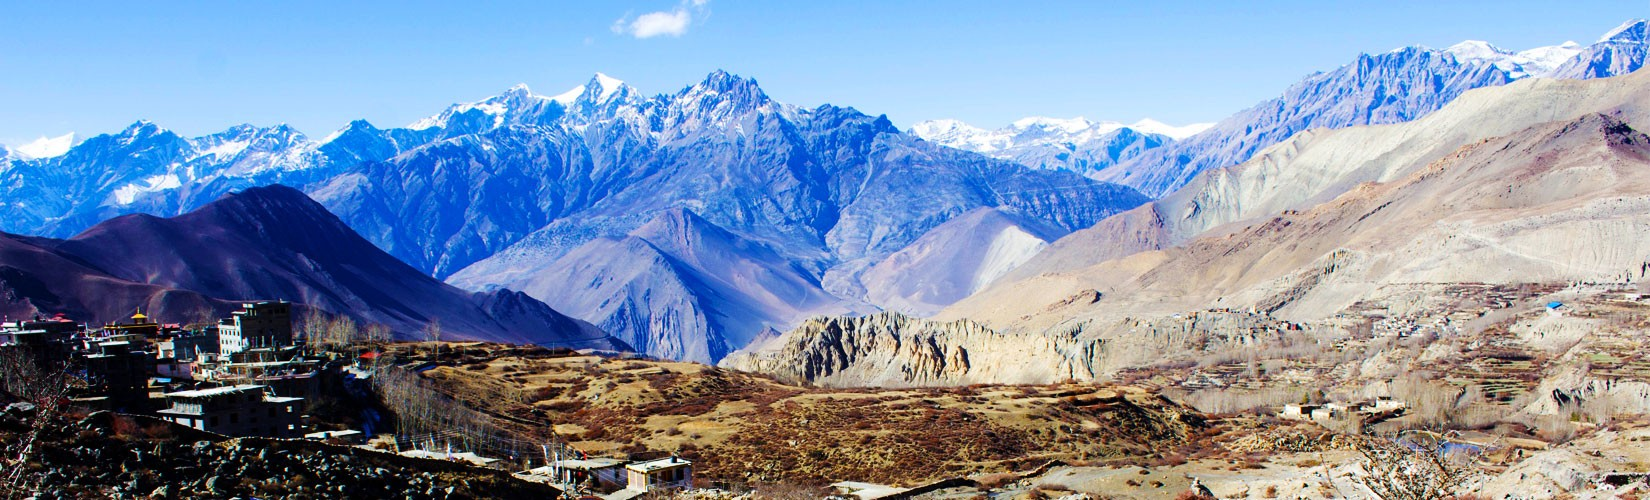 Restricted area trekking refers to trekking in such area that requires special permit for trekking from the government of Nepal. Upper Mustang and Upper Dolpo among few others are marked as restricted area trekking.